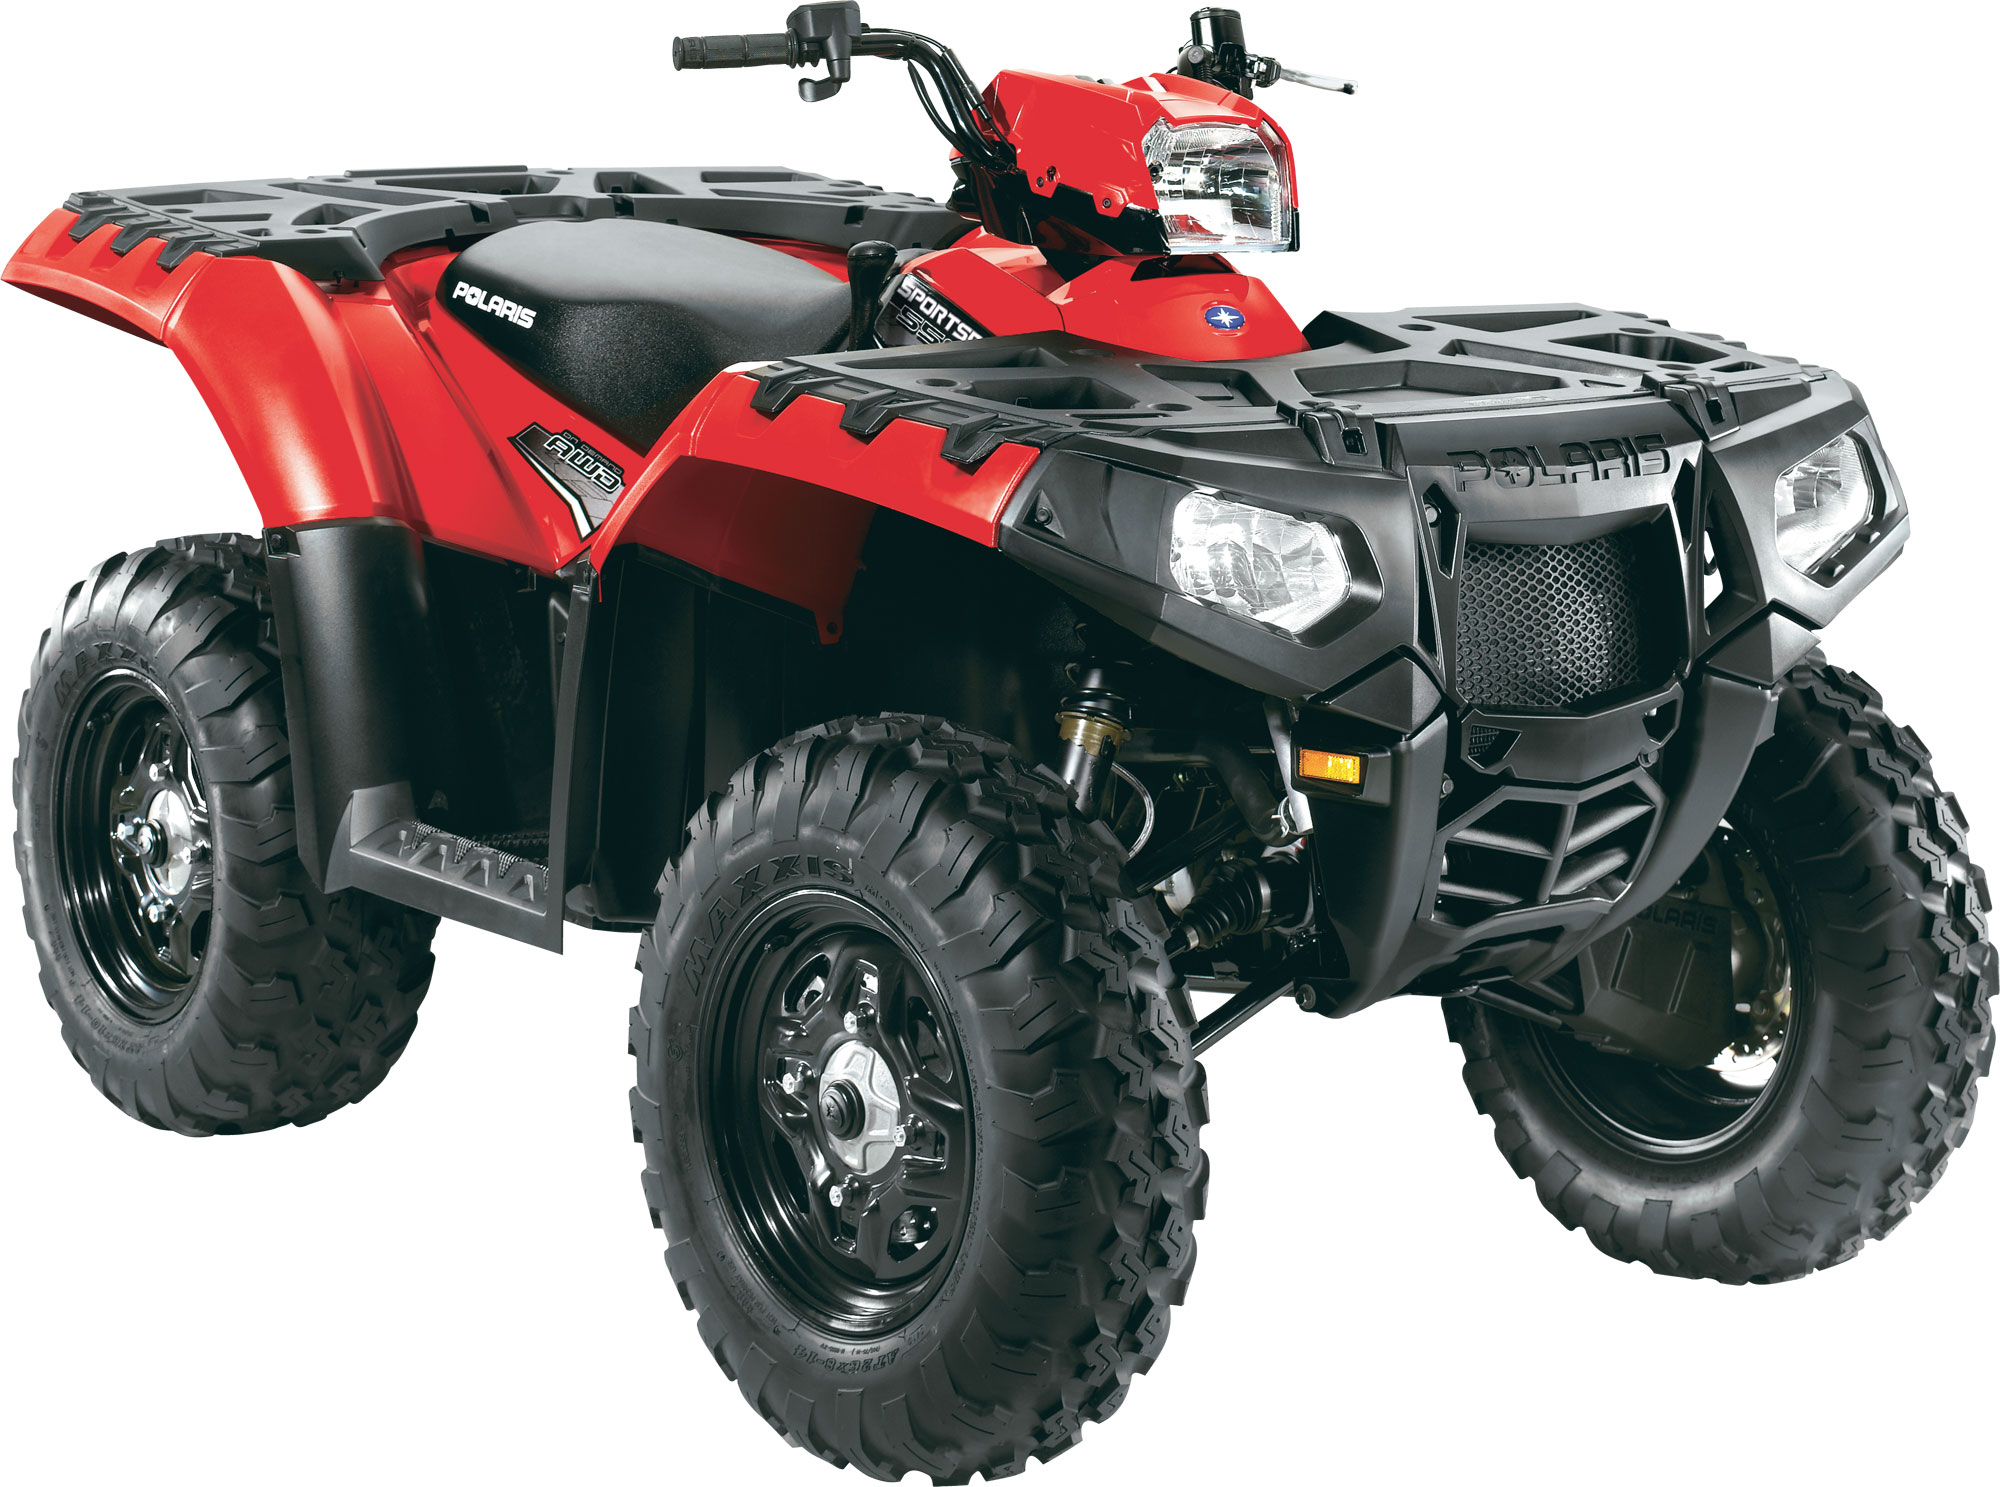 Polaris Sportsman 550 Specs - 2011  2012